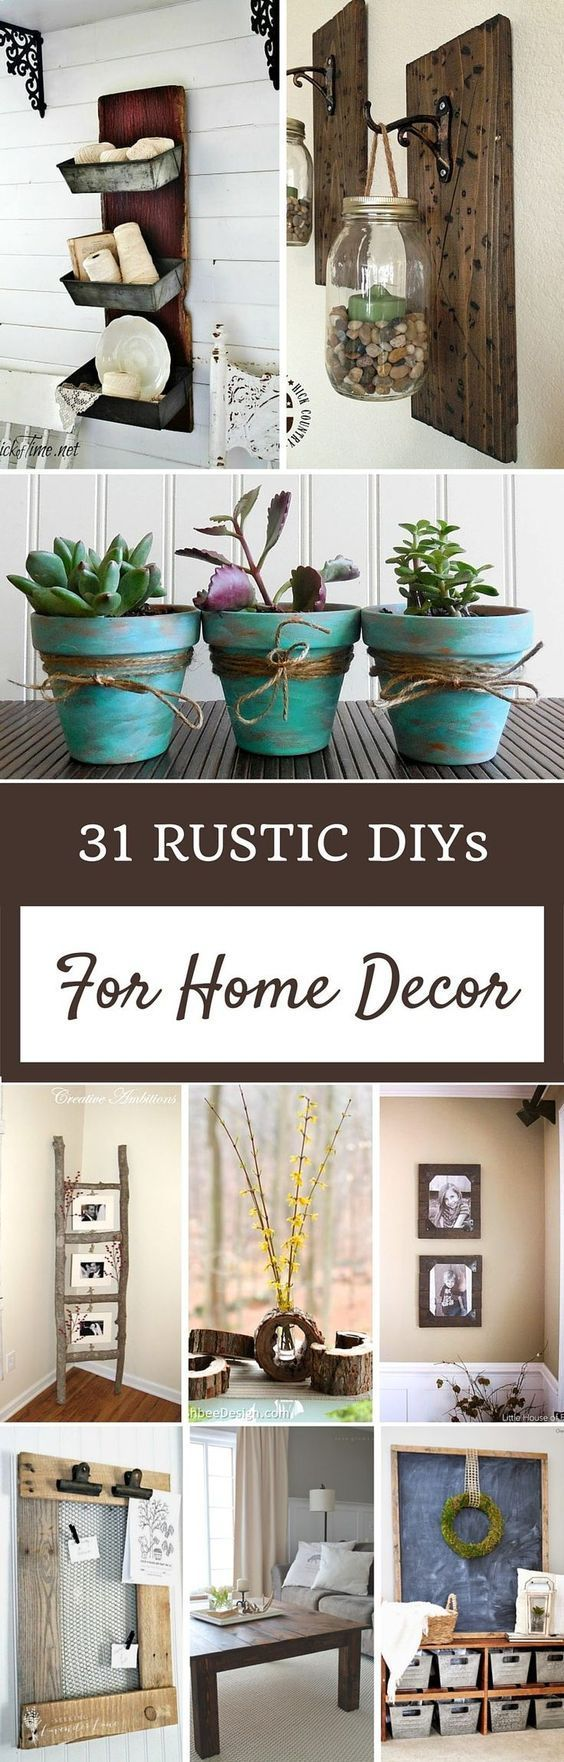 Best 20+ Rustic home decorating ideas on Pinterest